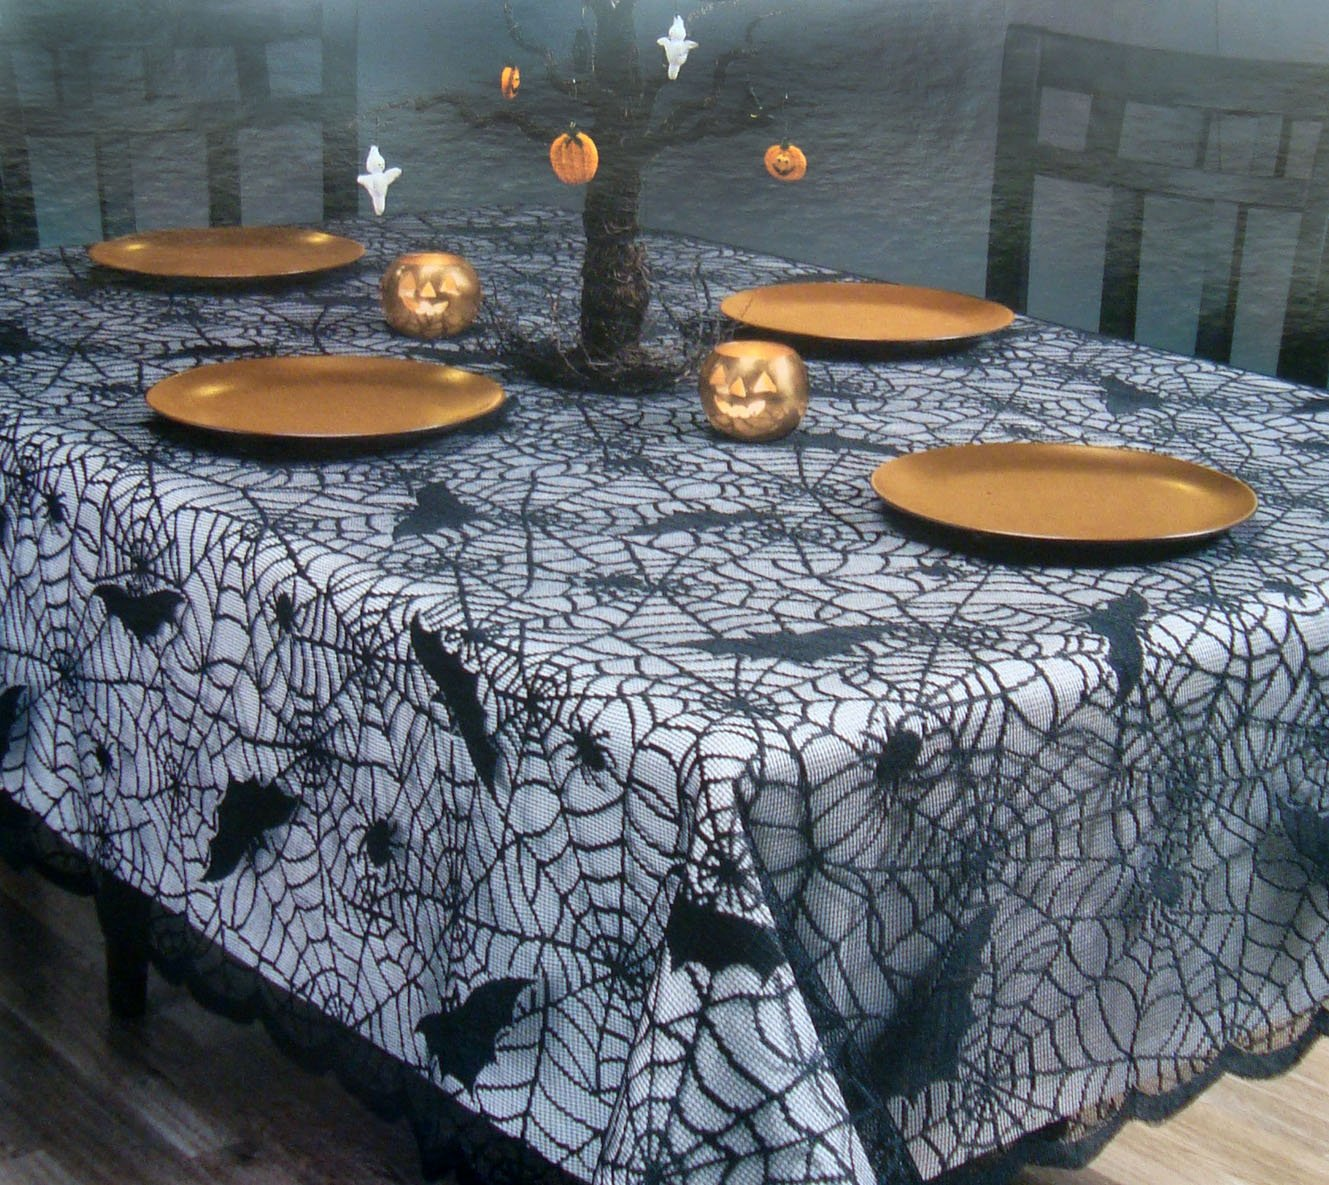 Halloween black web lace tablecover tablecloth scalloped border (52x70 Oblong)